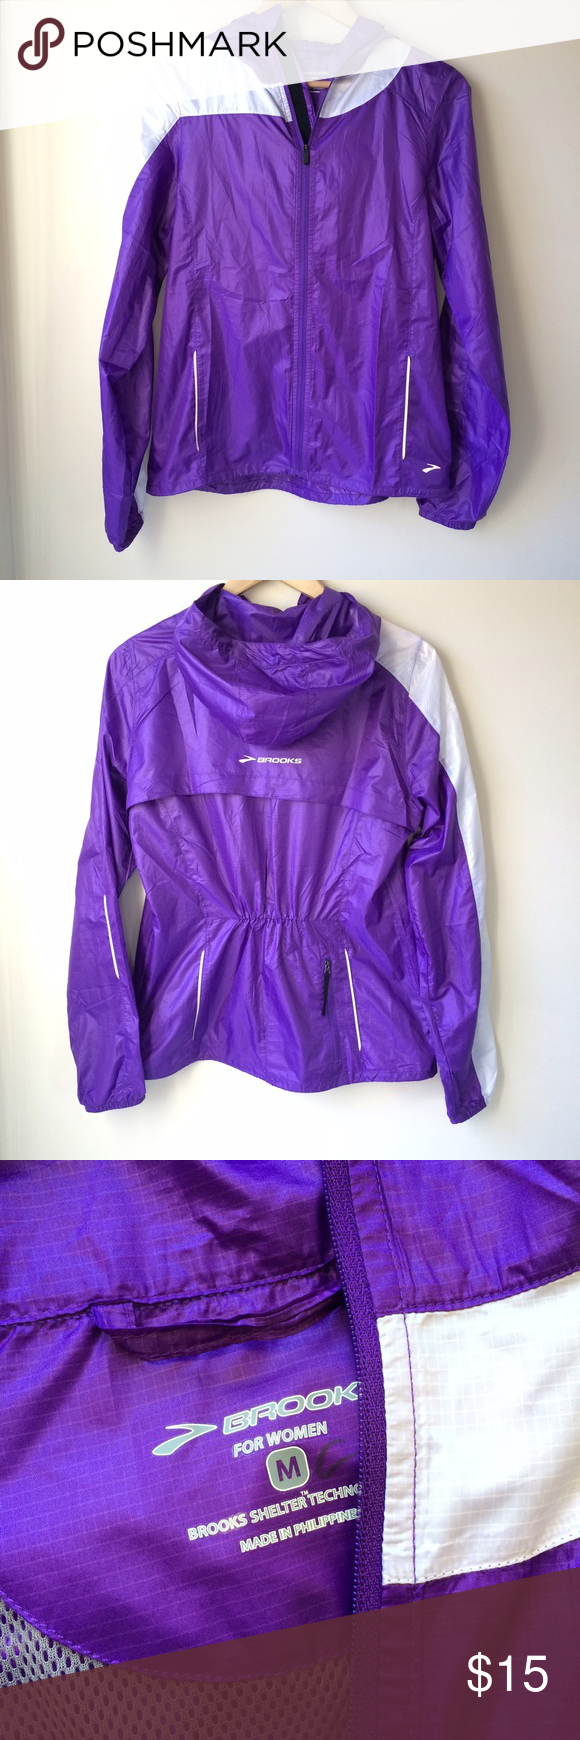 Brooks Shelter Technology Running Rain Jacket Brooks Shelter Technology jacket, size medium. Super lightweight, water and wind resistant. Stuffs into back pocket. There is a tiny hole near back hem and a mark on the tag. No care tag. Great condition otherwise! Brooks Jackets & Coats